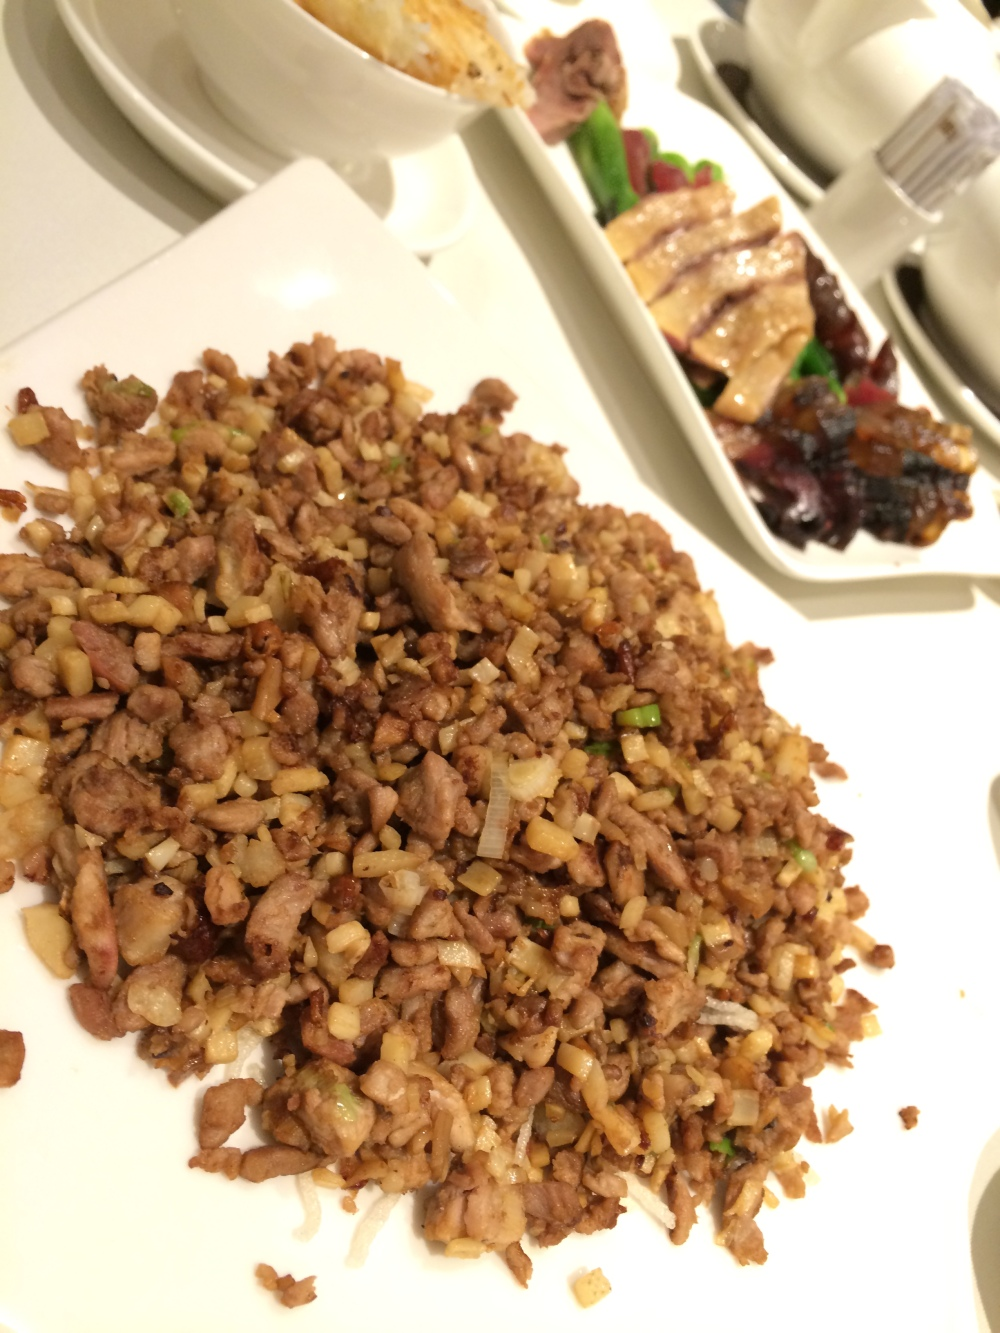 Minced duck. It was dry but that's how they cook it pala